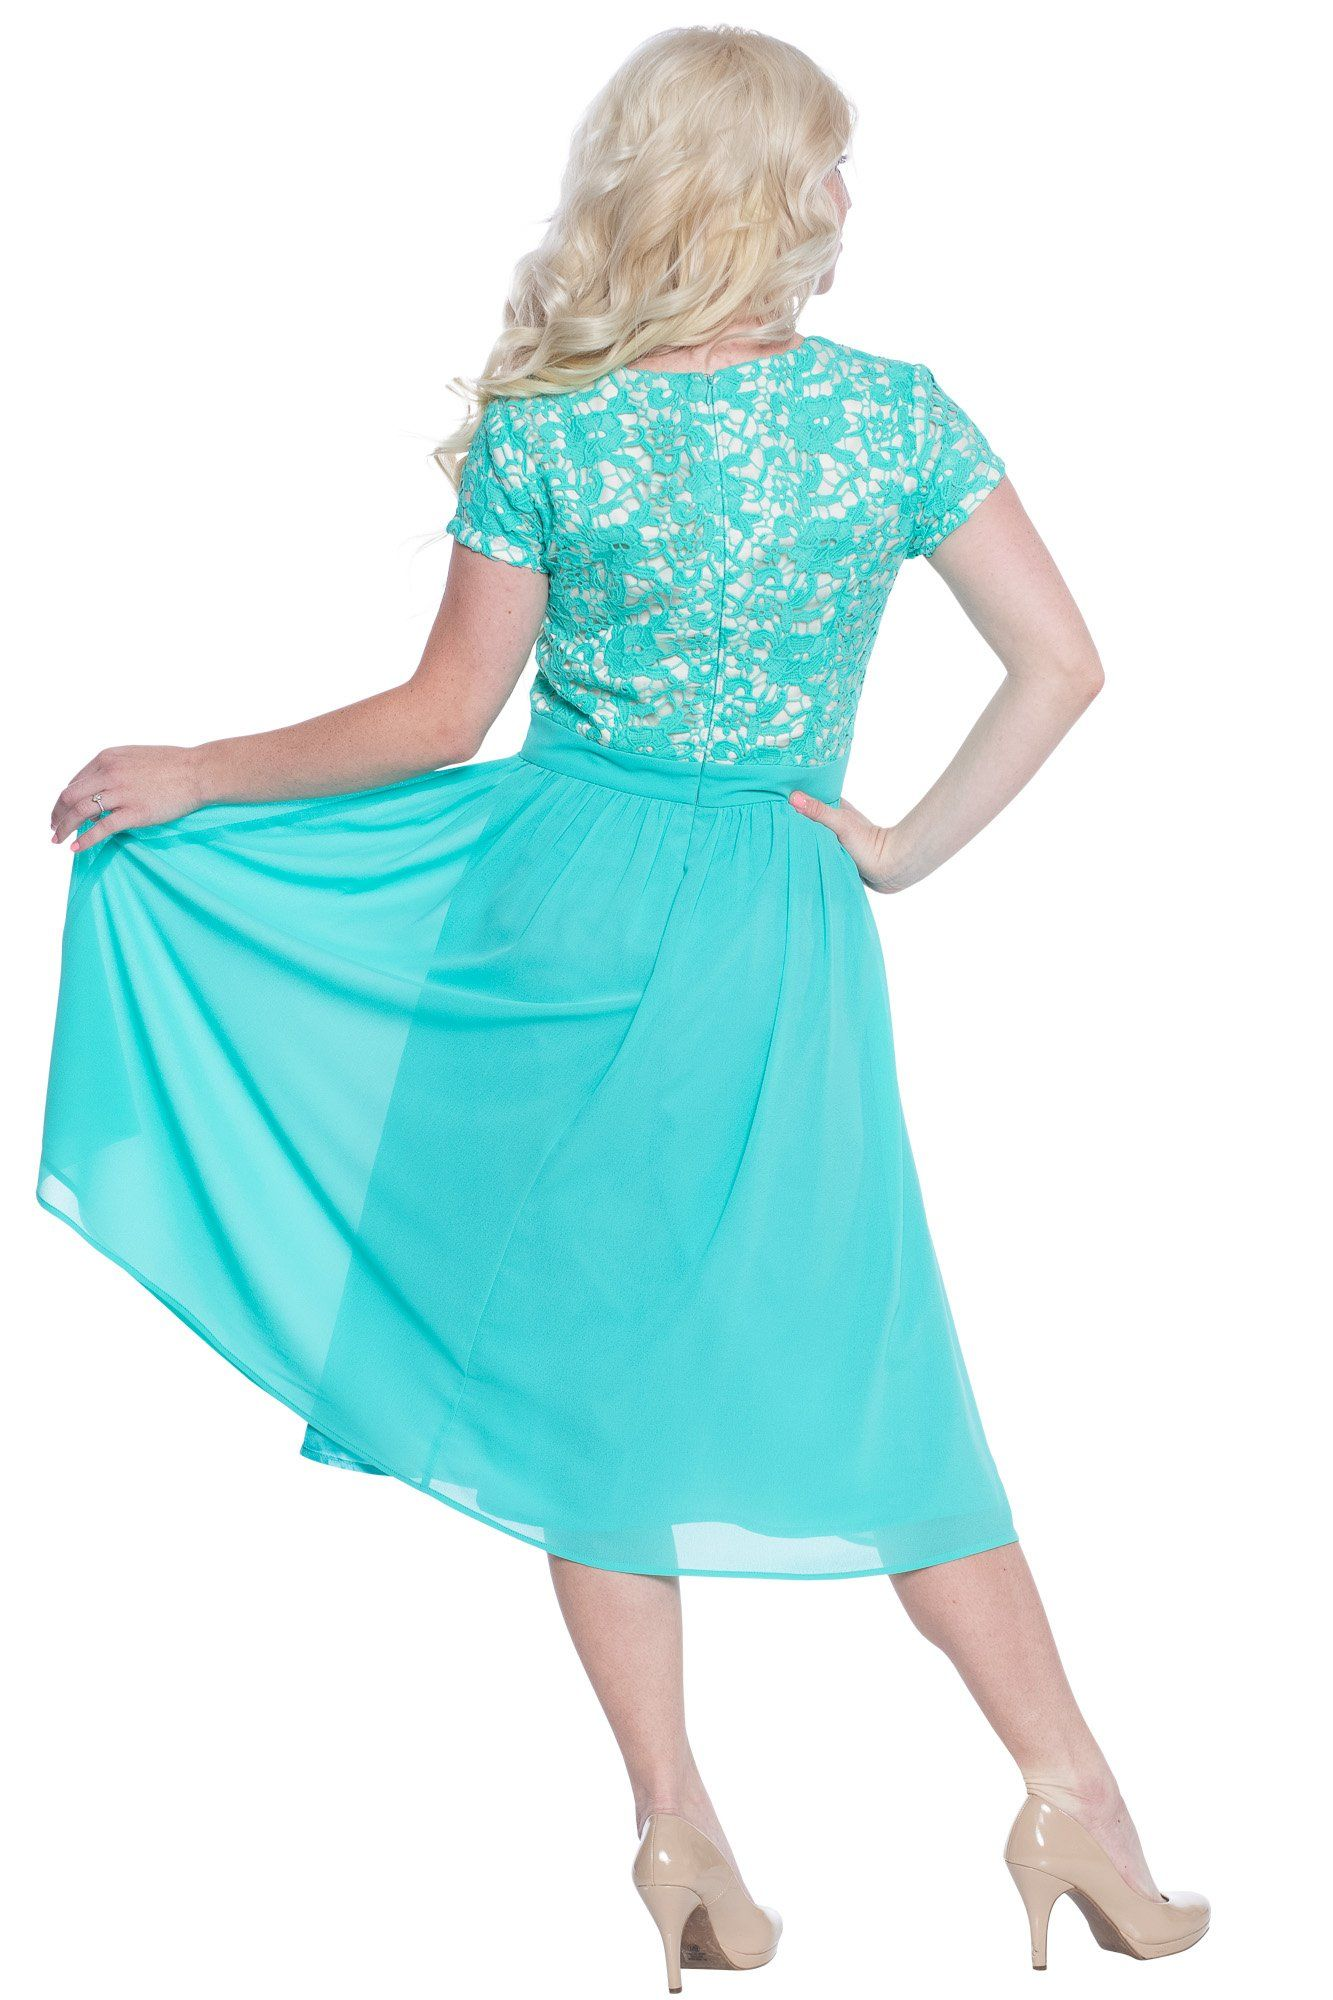 a535720c080 Olivia Lace and Chiffon Modest Dress In Turquoise Tiffany Blue or ...